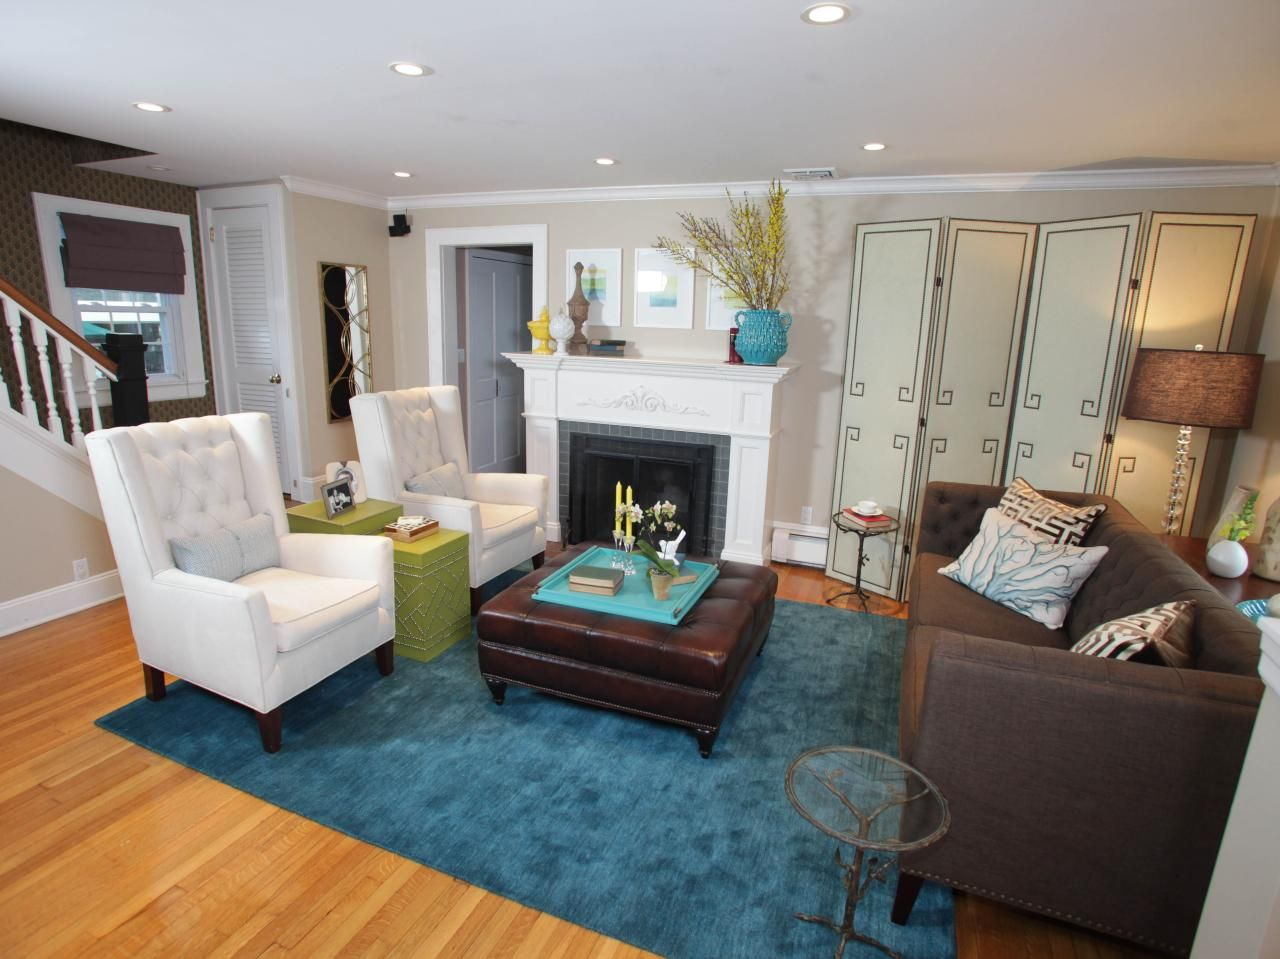 Chocolate sofa with cream walls and teal